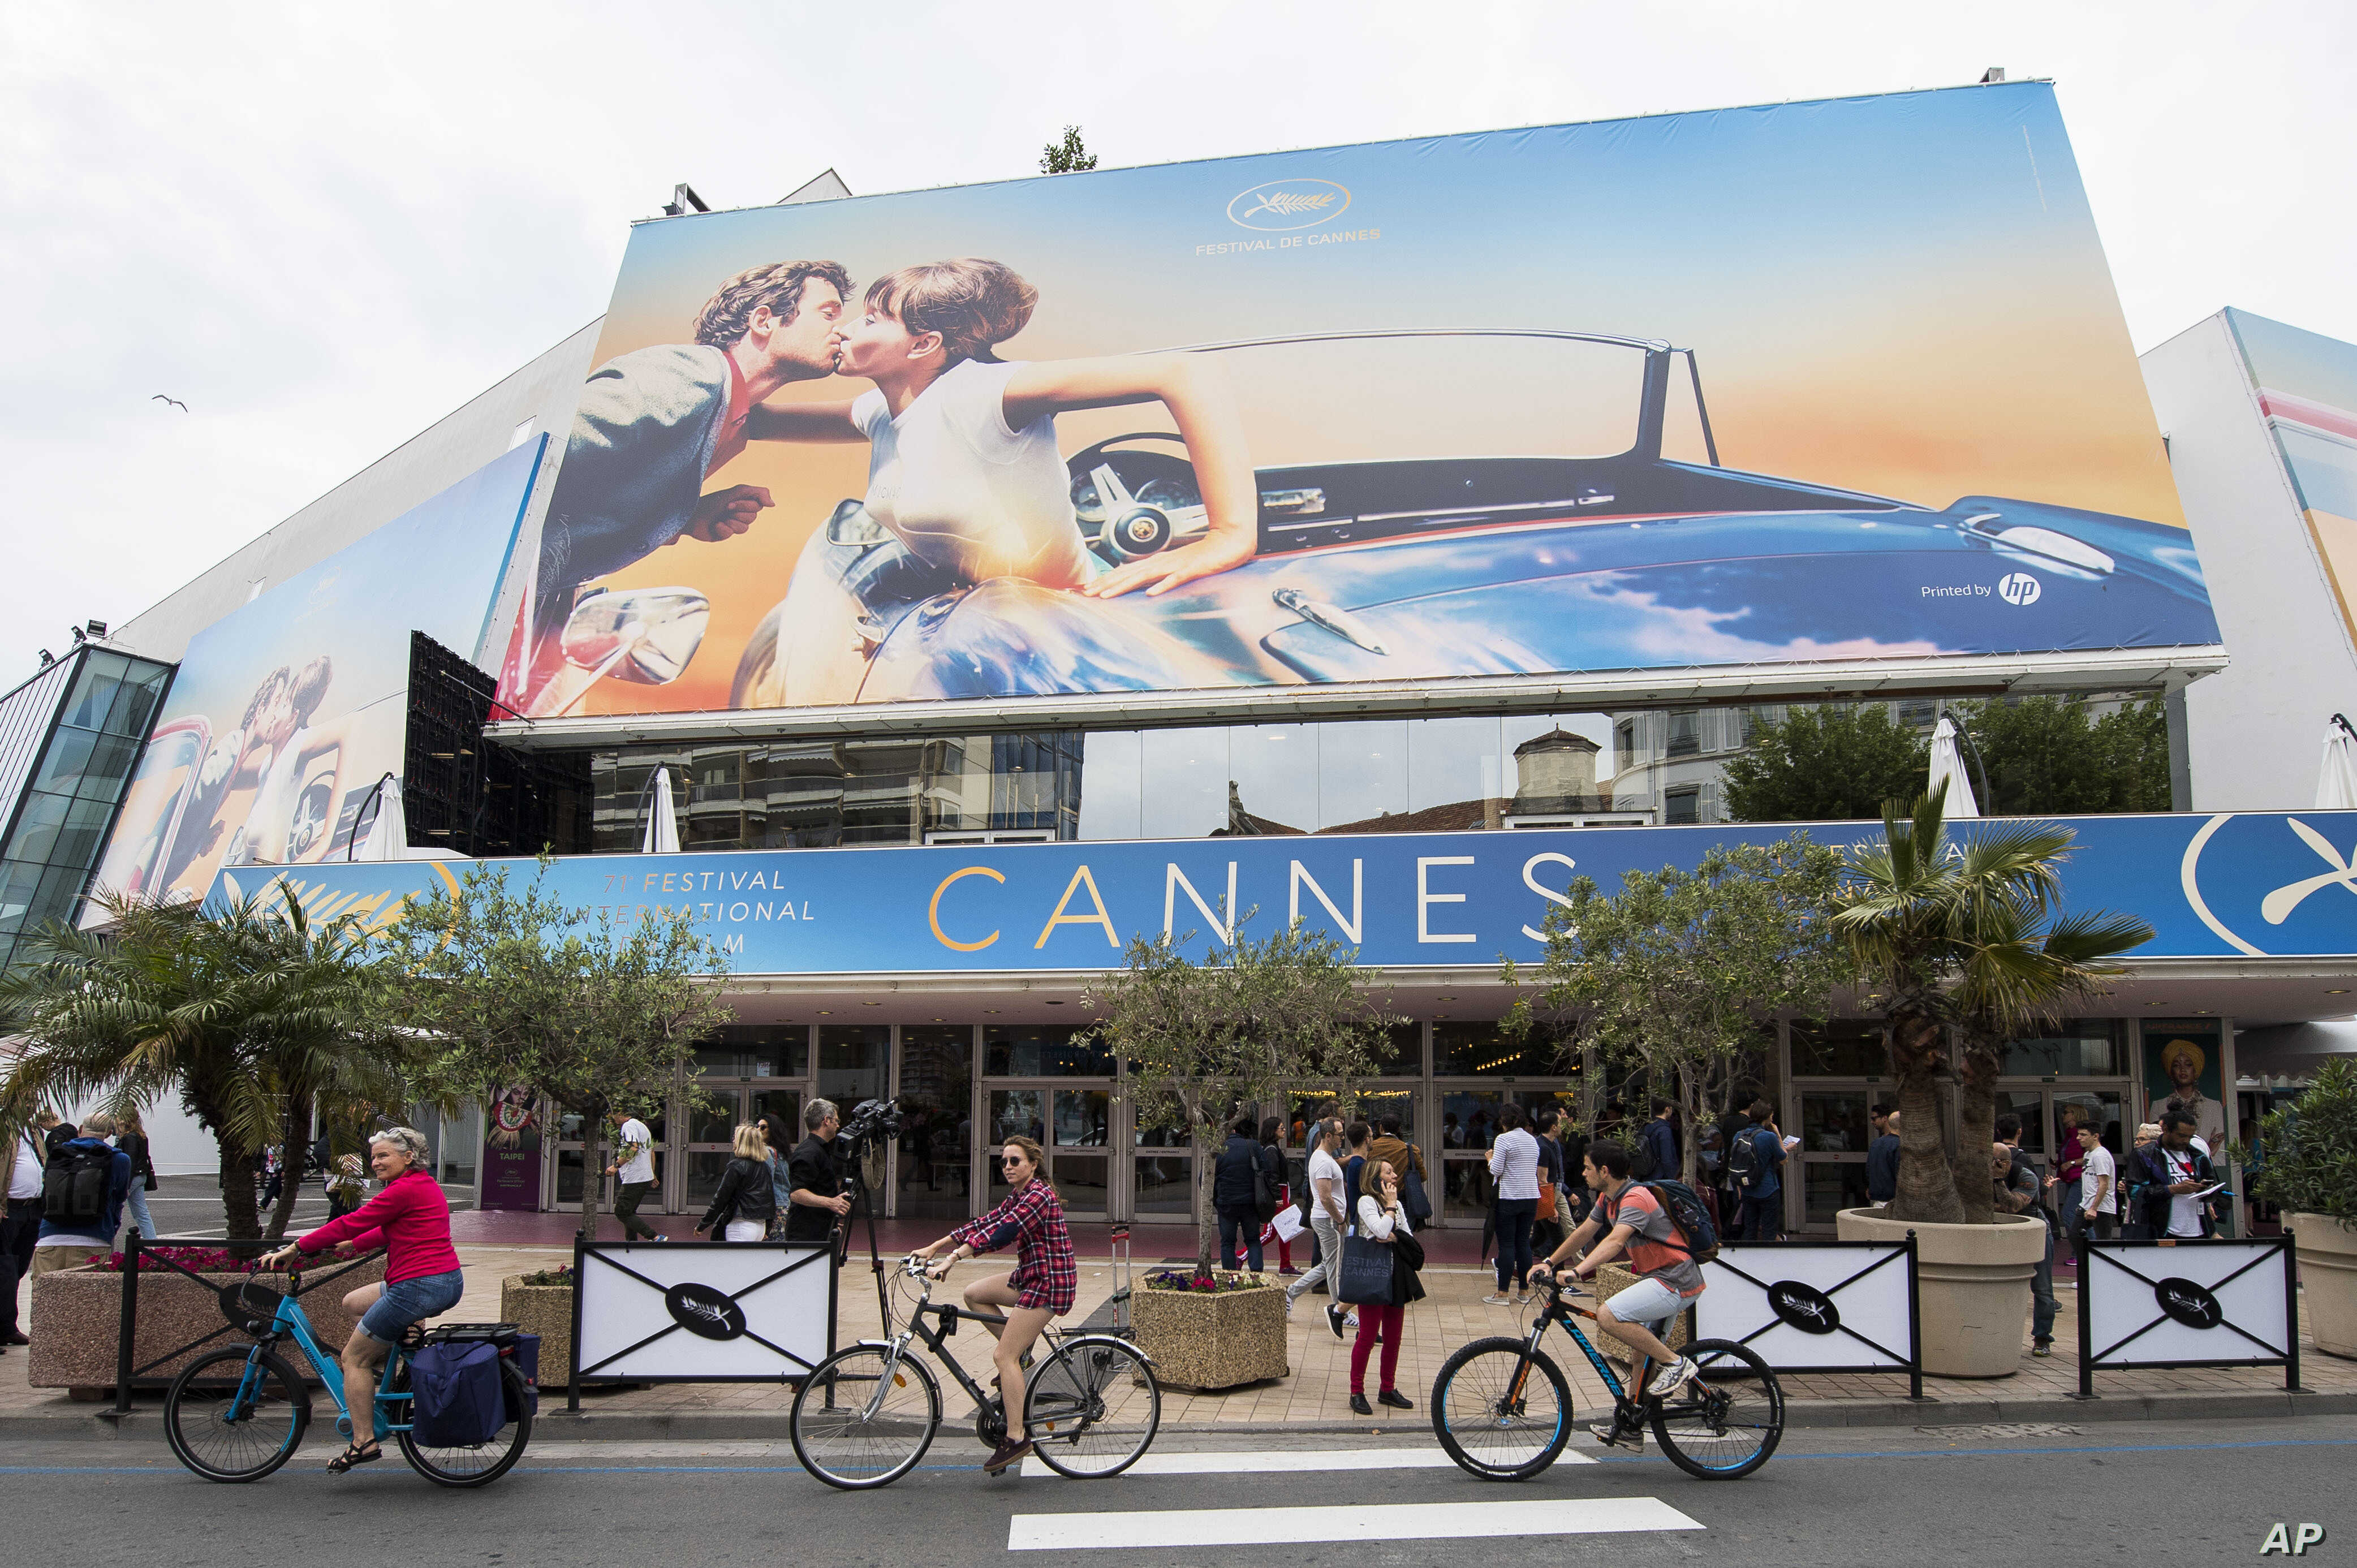 A view of the Palais des Festivals at the 71st international film festival, Cannes, southern France, May 7, 2018.